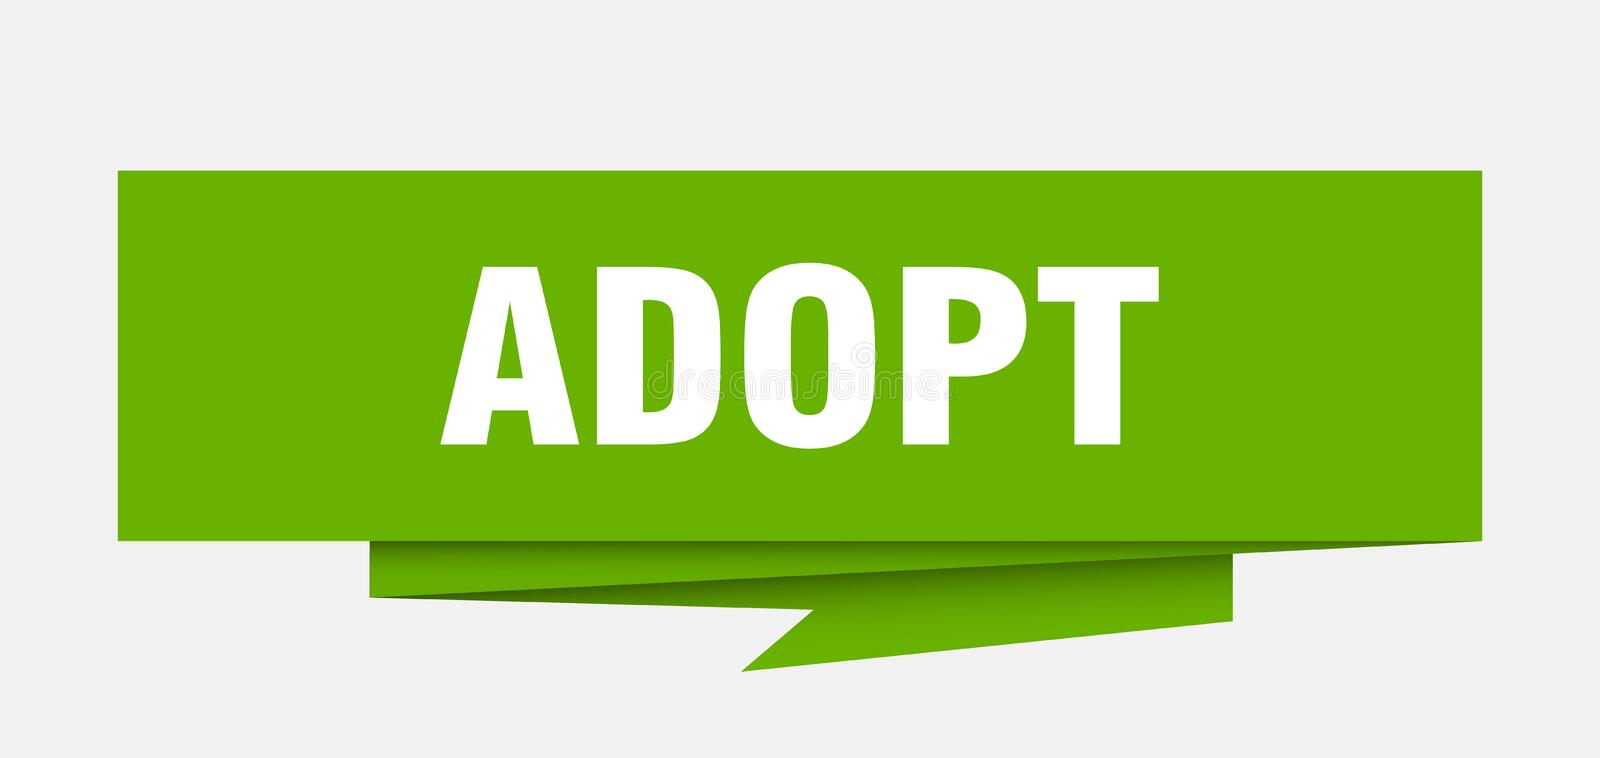 adopt vector illustratie